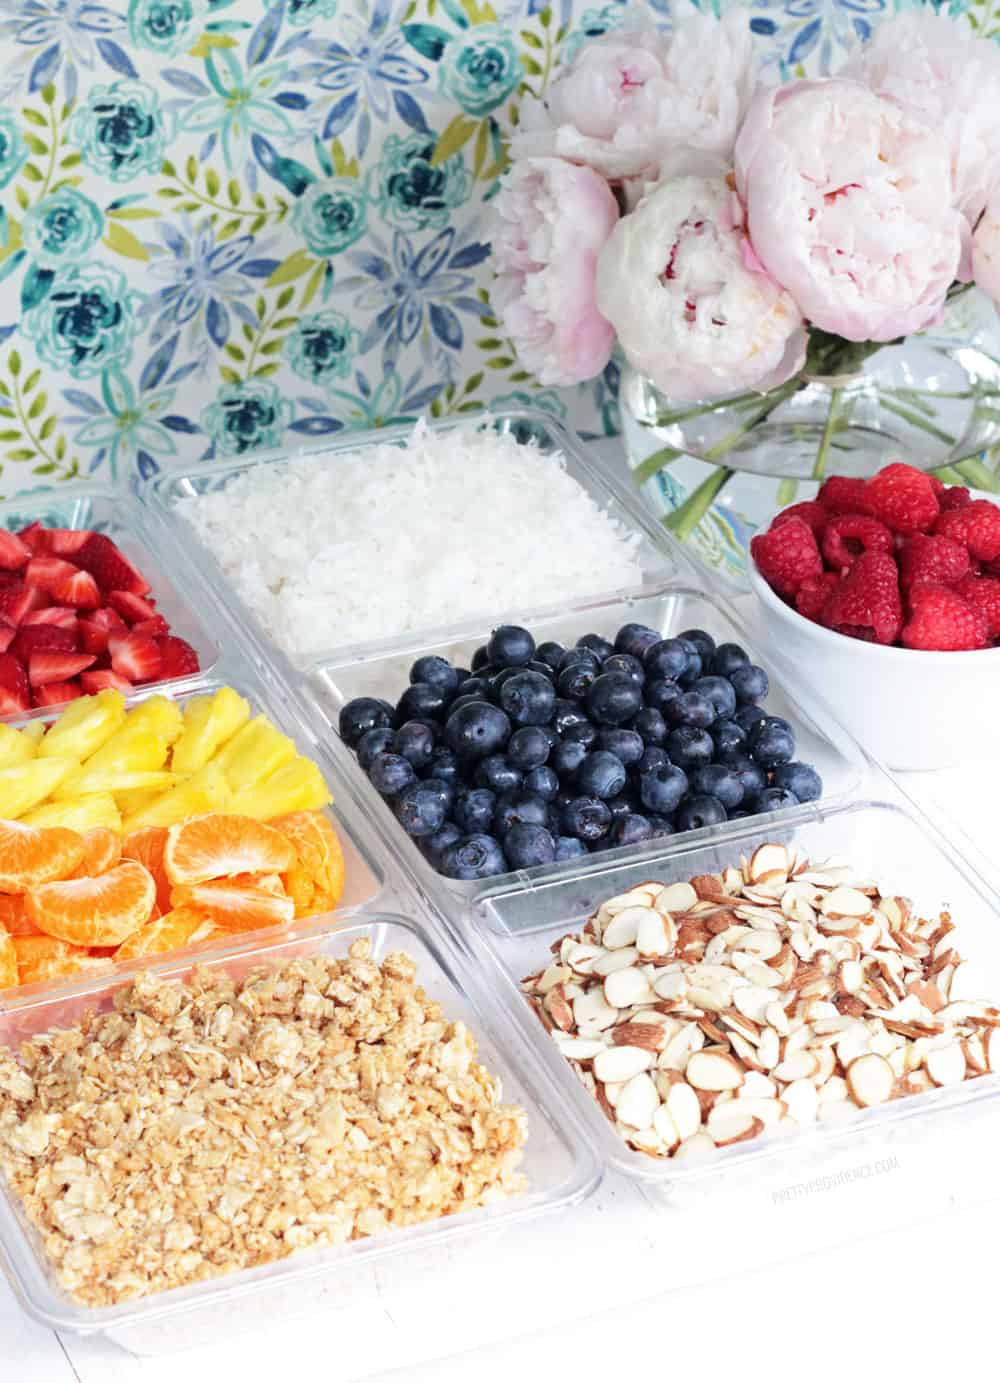 Yogurt toppings in a clear dish: strawberries, blueberries, raspberries, pineapple, oranges, almonds, coconut and granola.